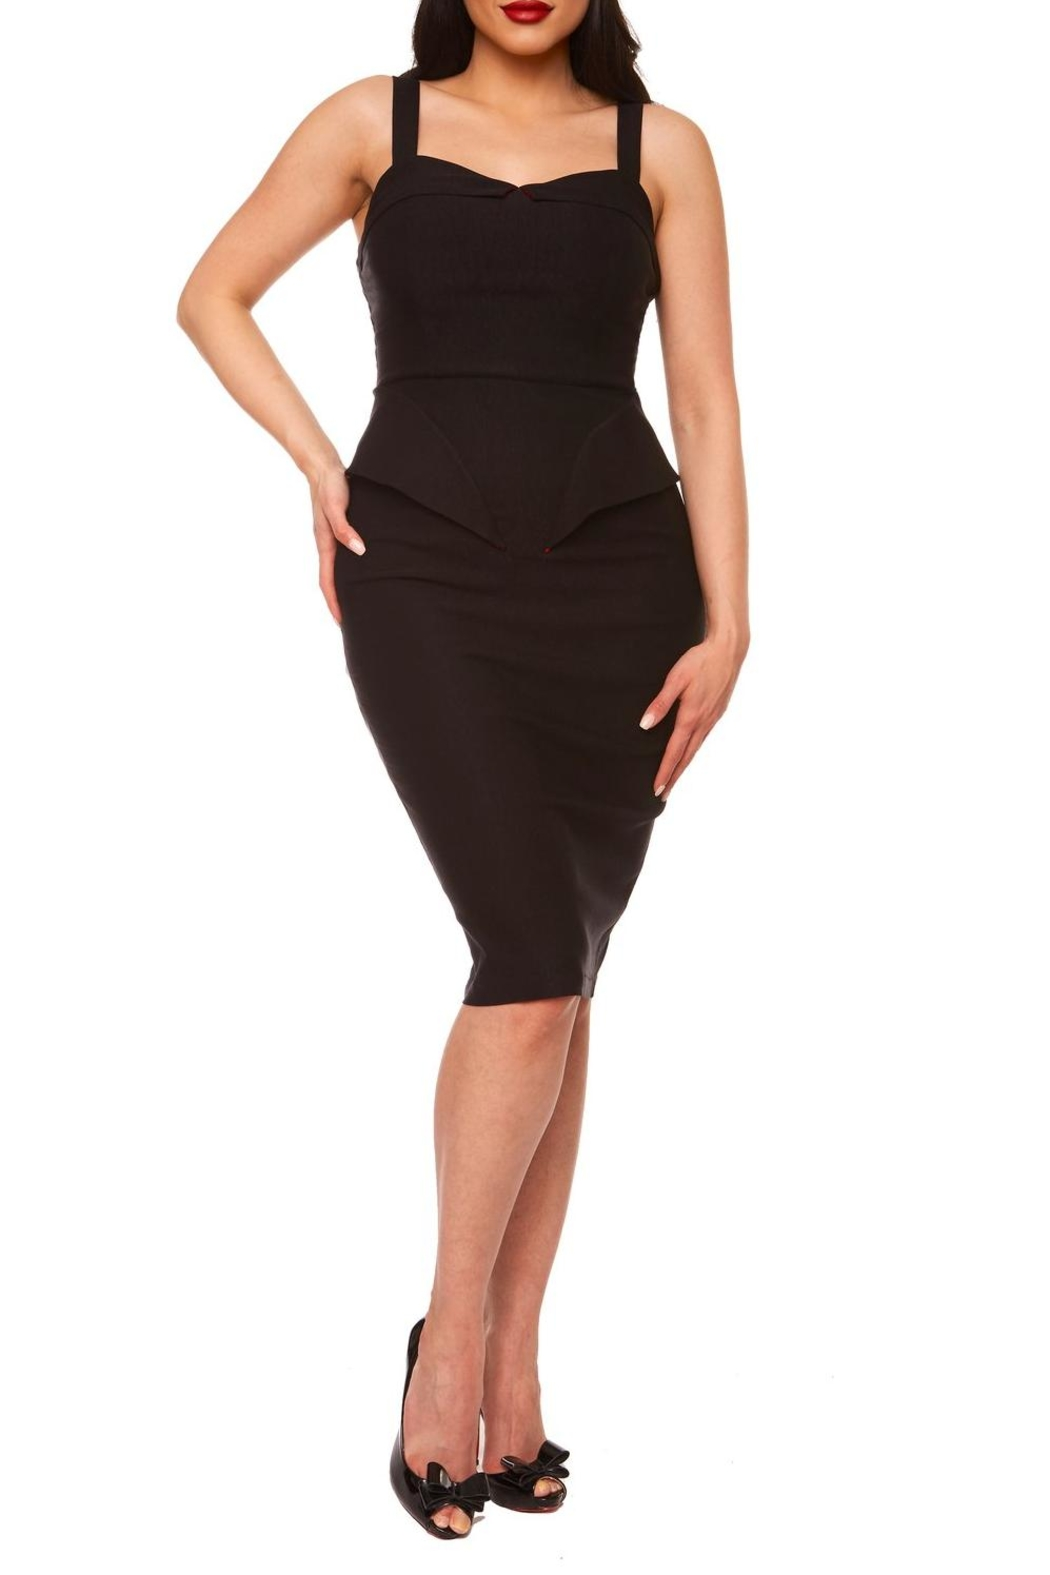 Rebel Love Clothing Vanity Wiggle Dress - Main Image